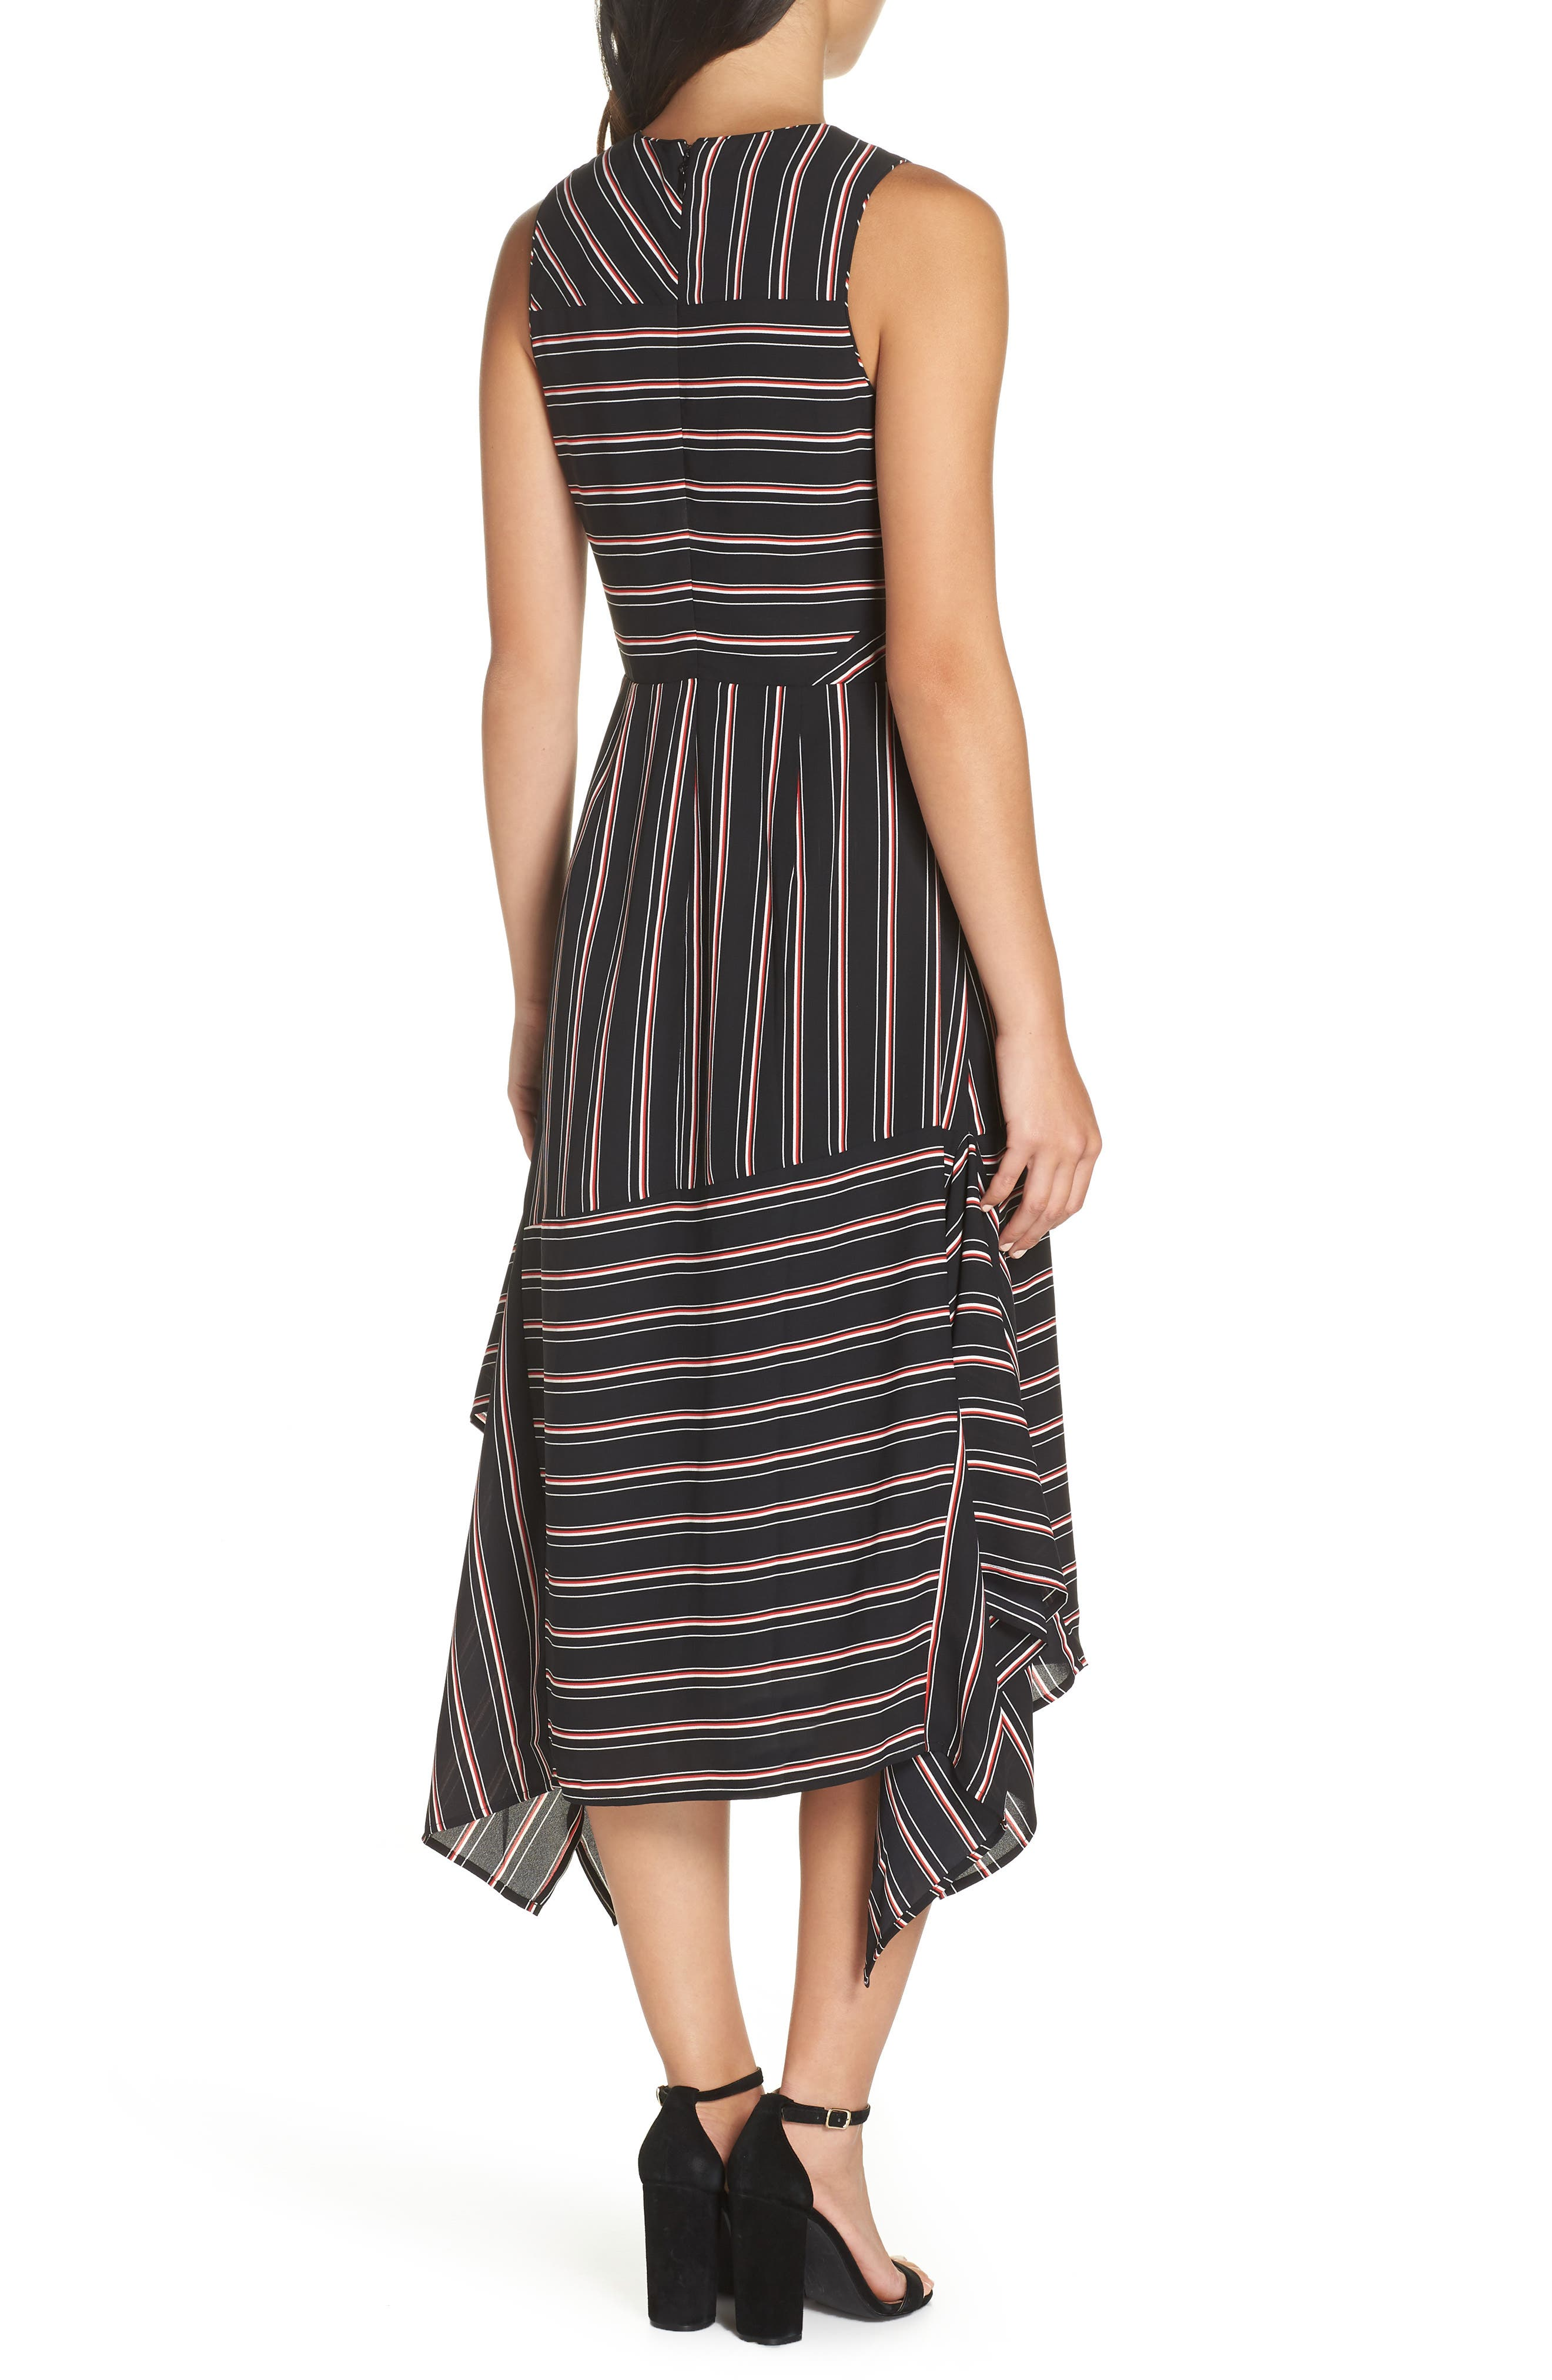 Mix Stripe Midi Dress,                             Alternate thumbnail 2, color,                             BLACK STRIPE MIX COMBO